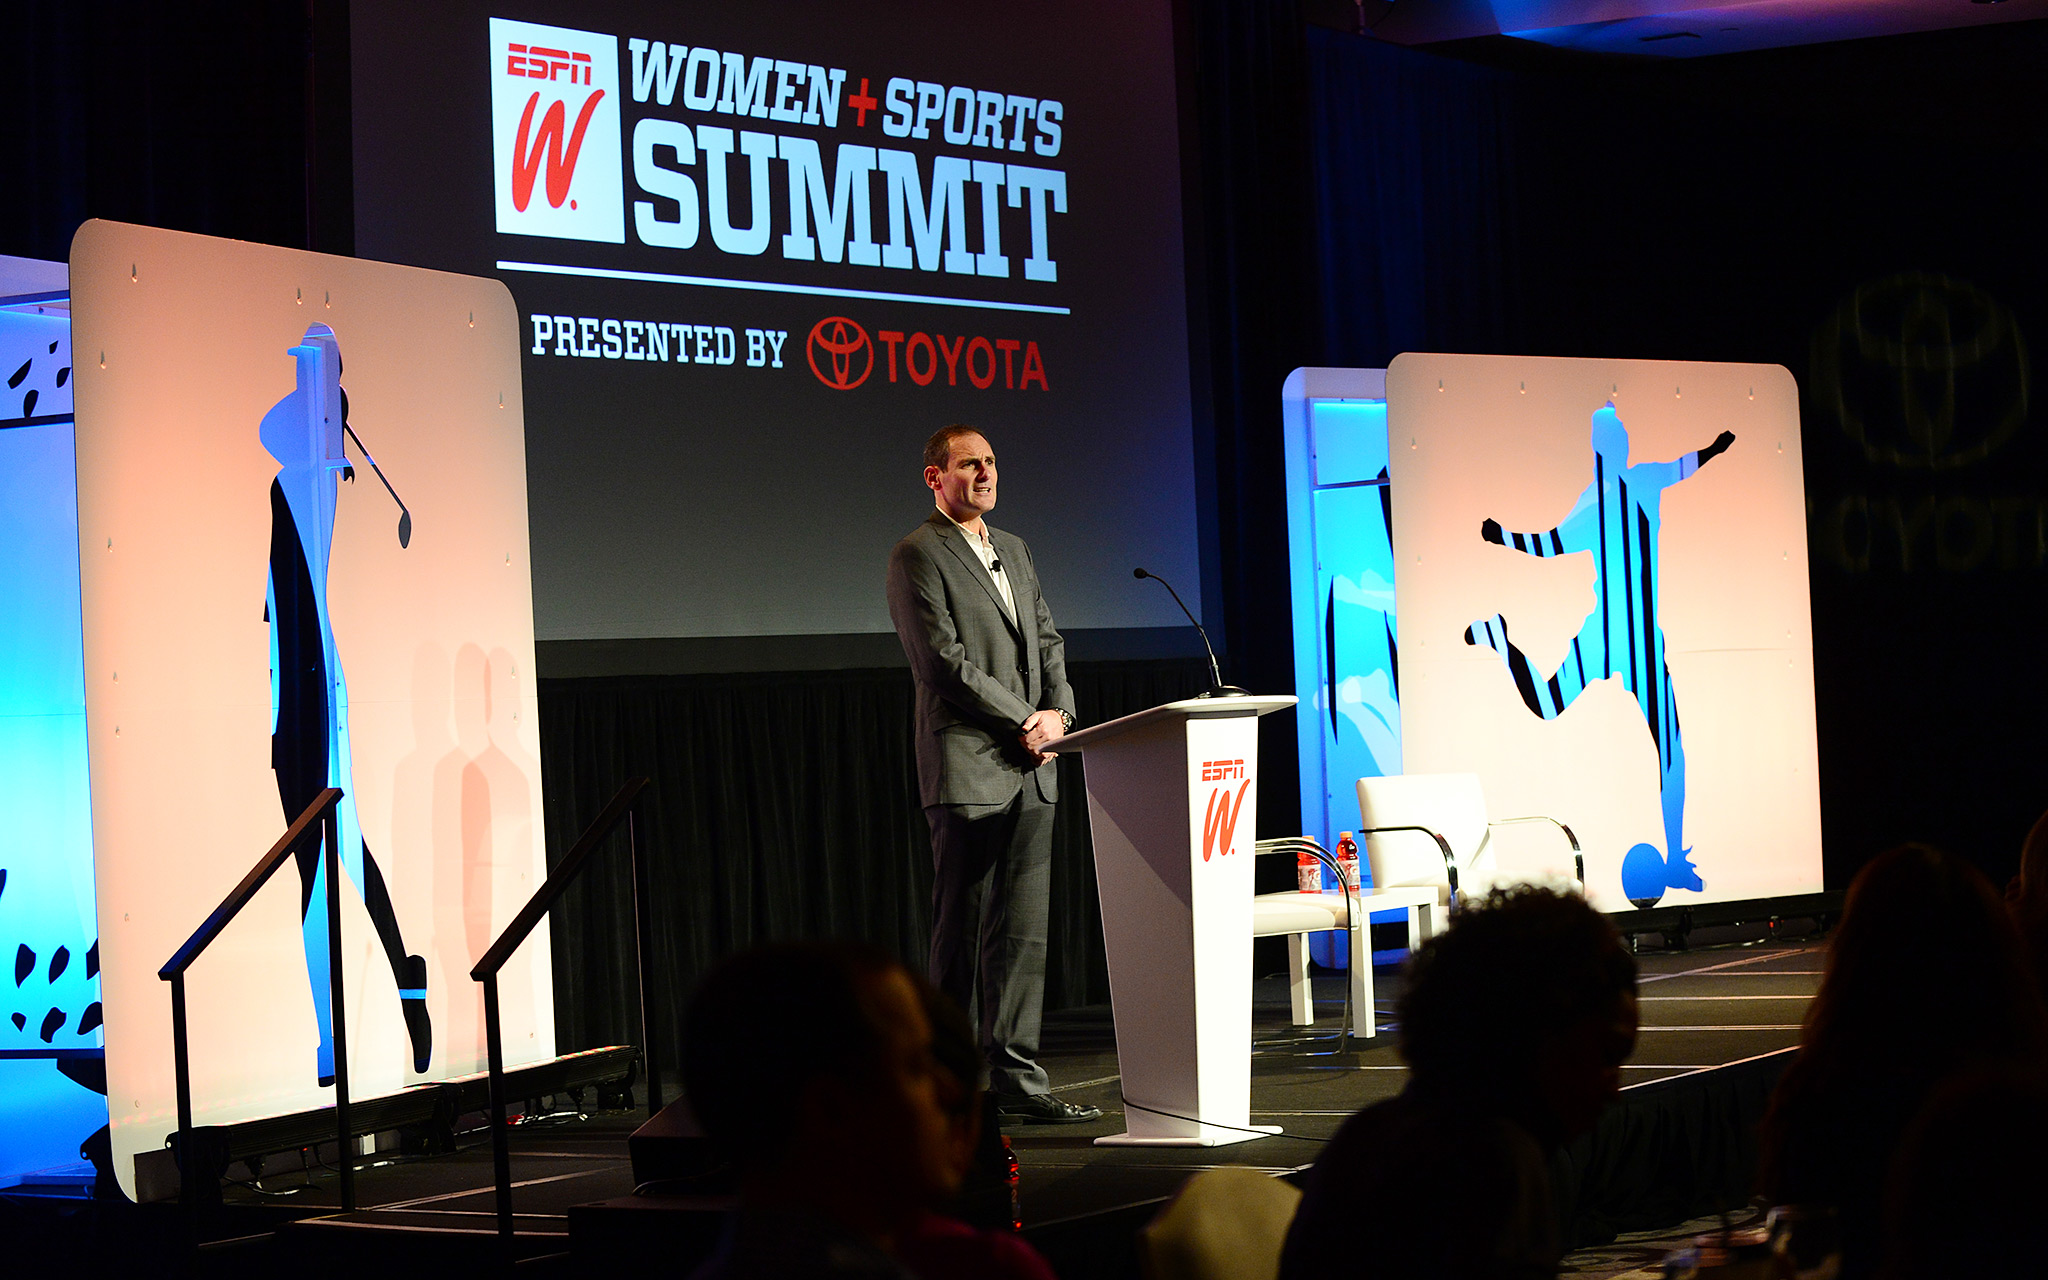 Pac-12 Commissioner Larry Scott's Power Talk challenged those in the audience to think about what more they could do to help provide more exposure for women's athletics.